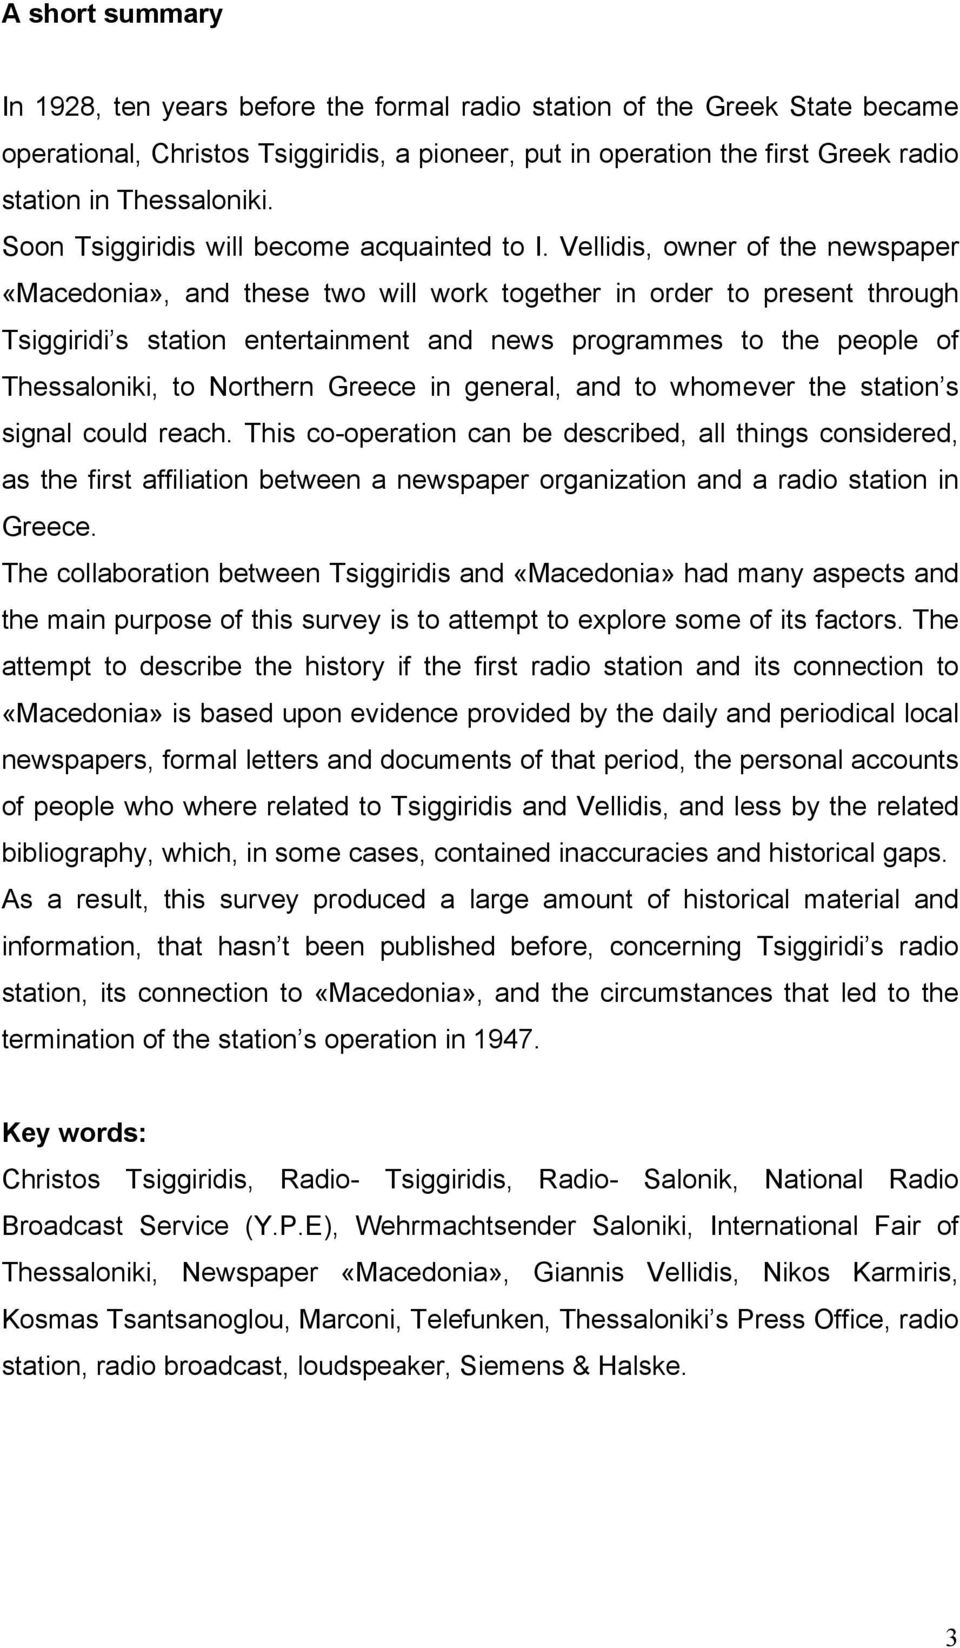 Vellidis, owner of the newspaper «Macedonia», and these two will work together in order to present through Tsiggiridi s station entertainment and news programmes to the people of Thessaloniki, to